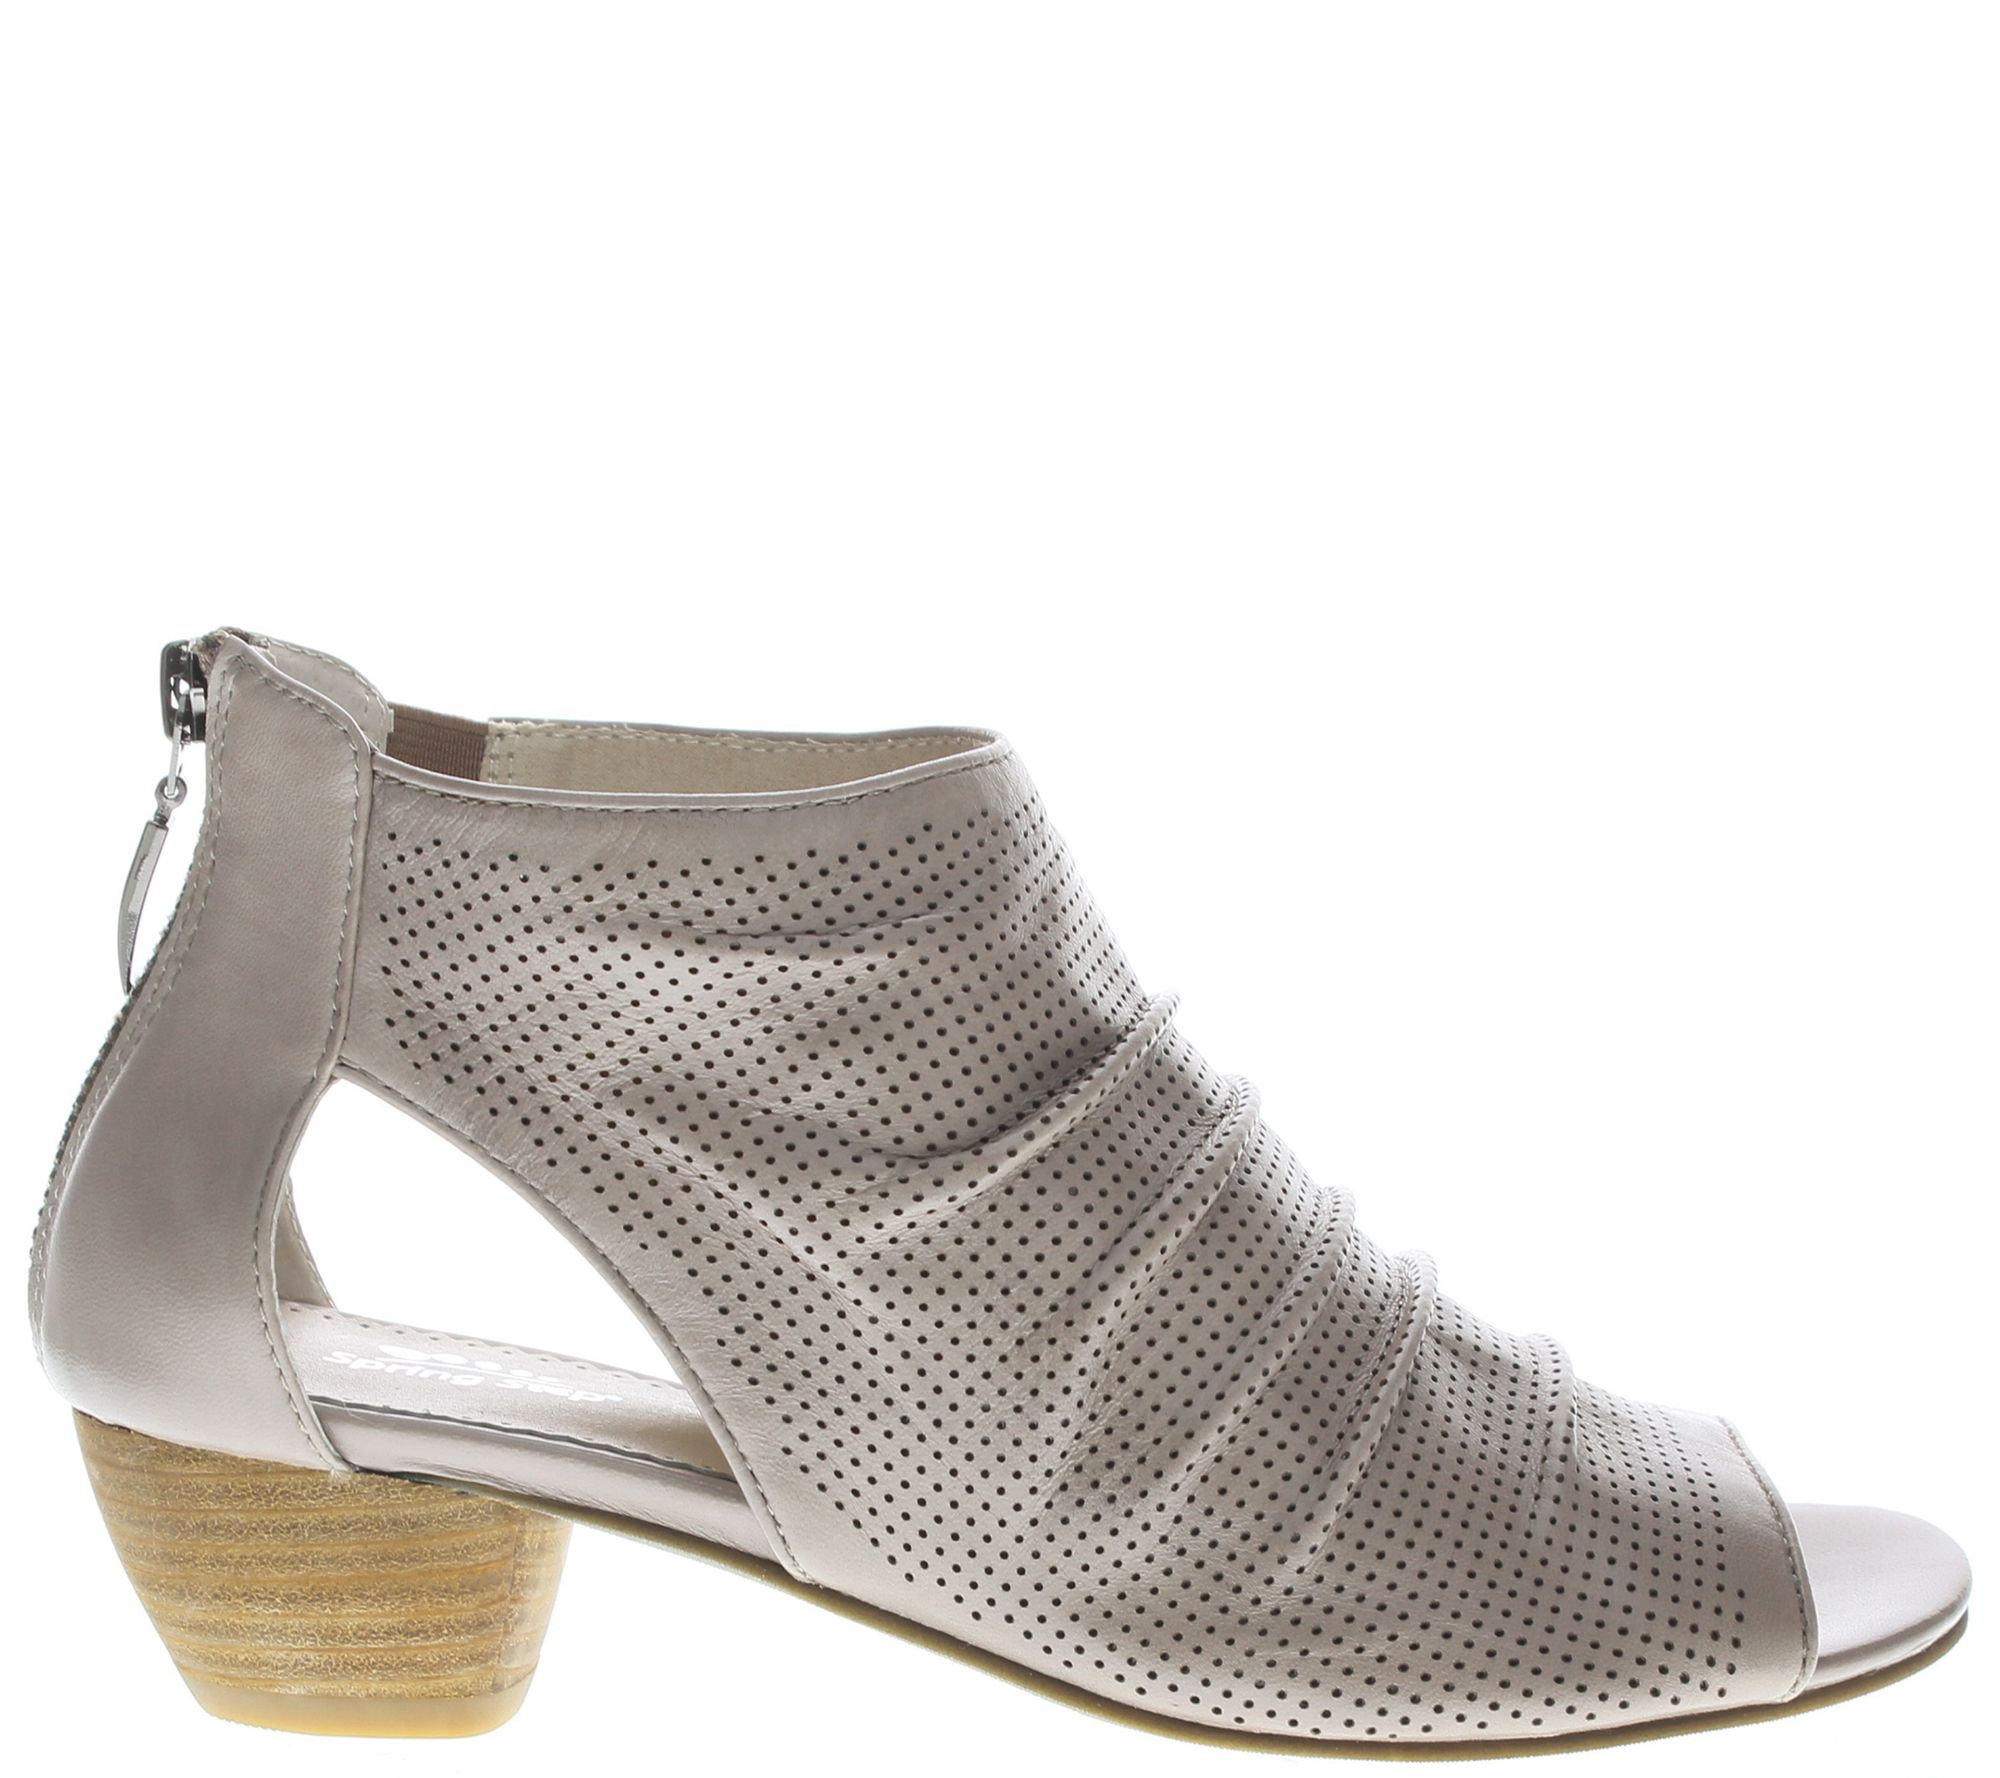 Spring Step Perforated Leather Booties - Avidra outlet fast delivery footlocker pictures sale online efBnKi19